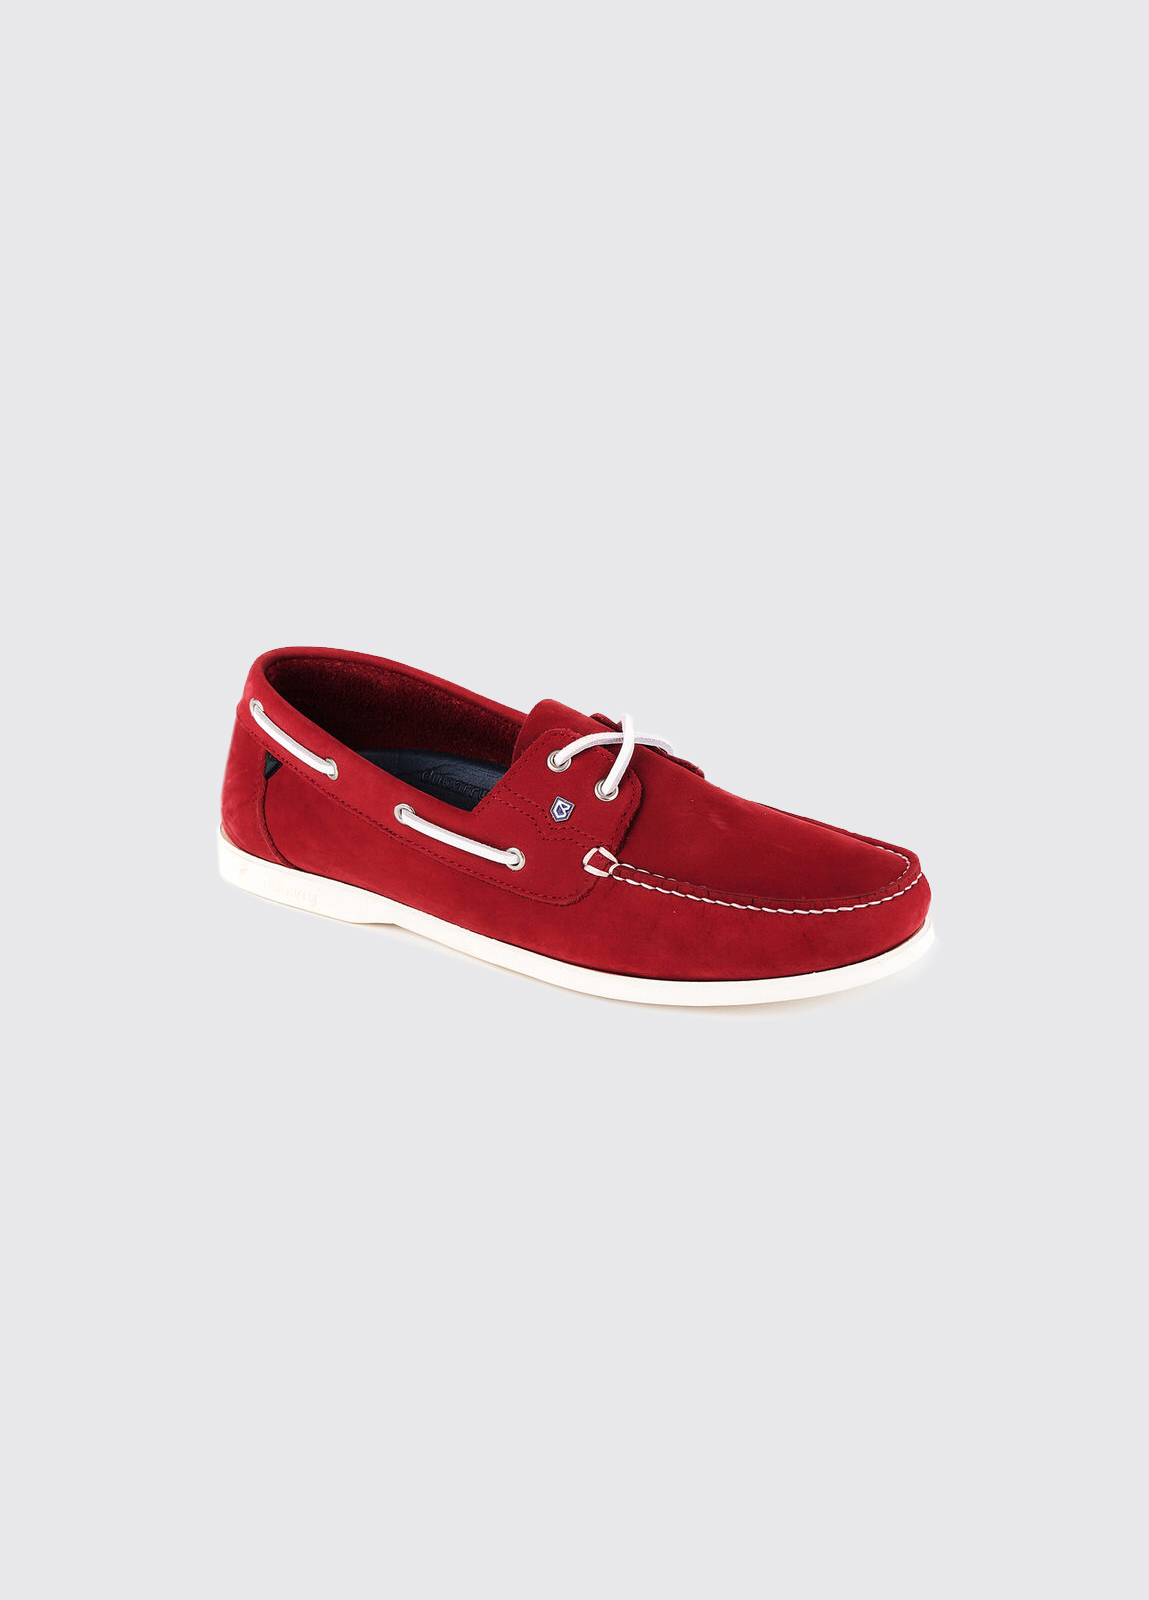 Port Moccasin - Ruby Red